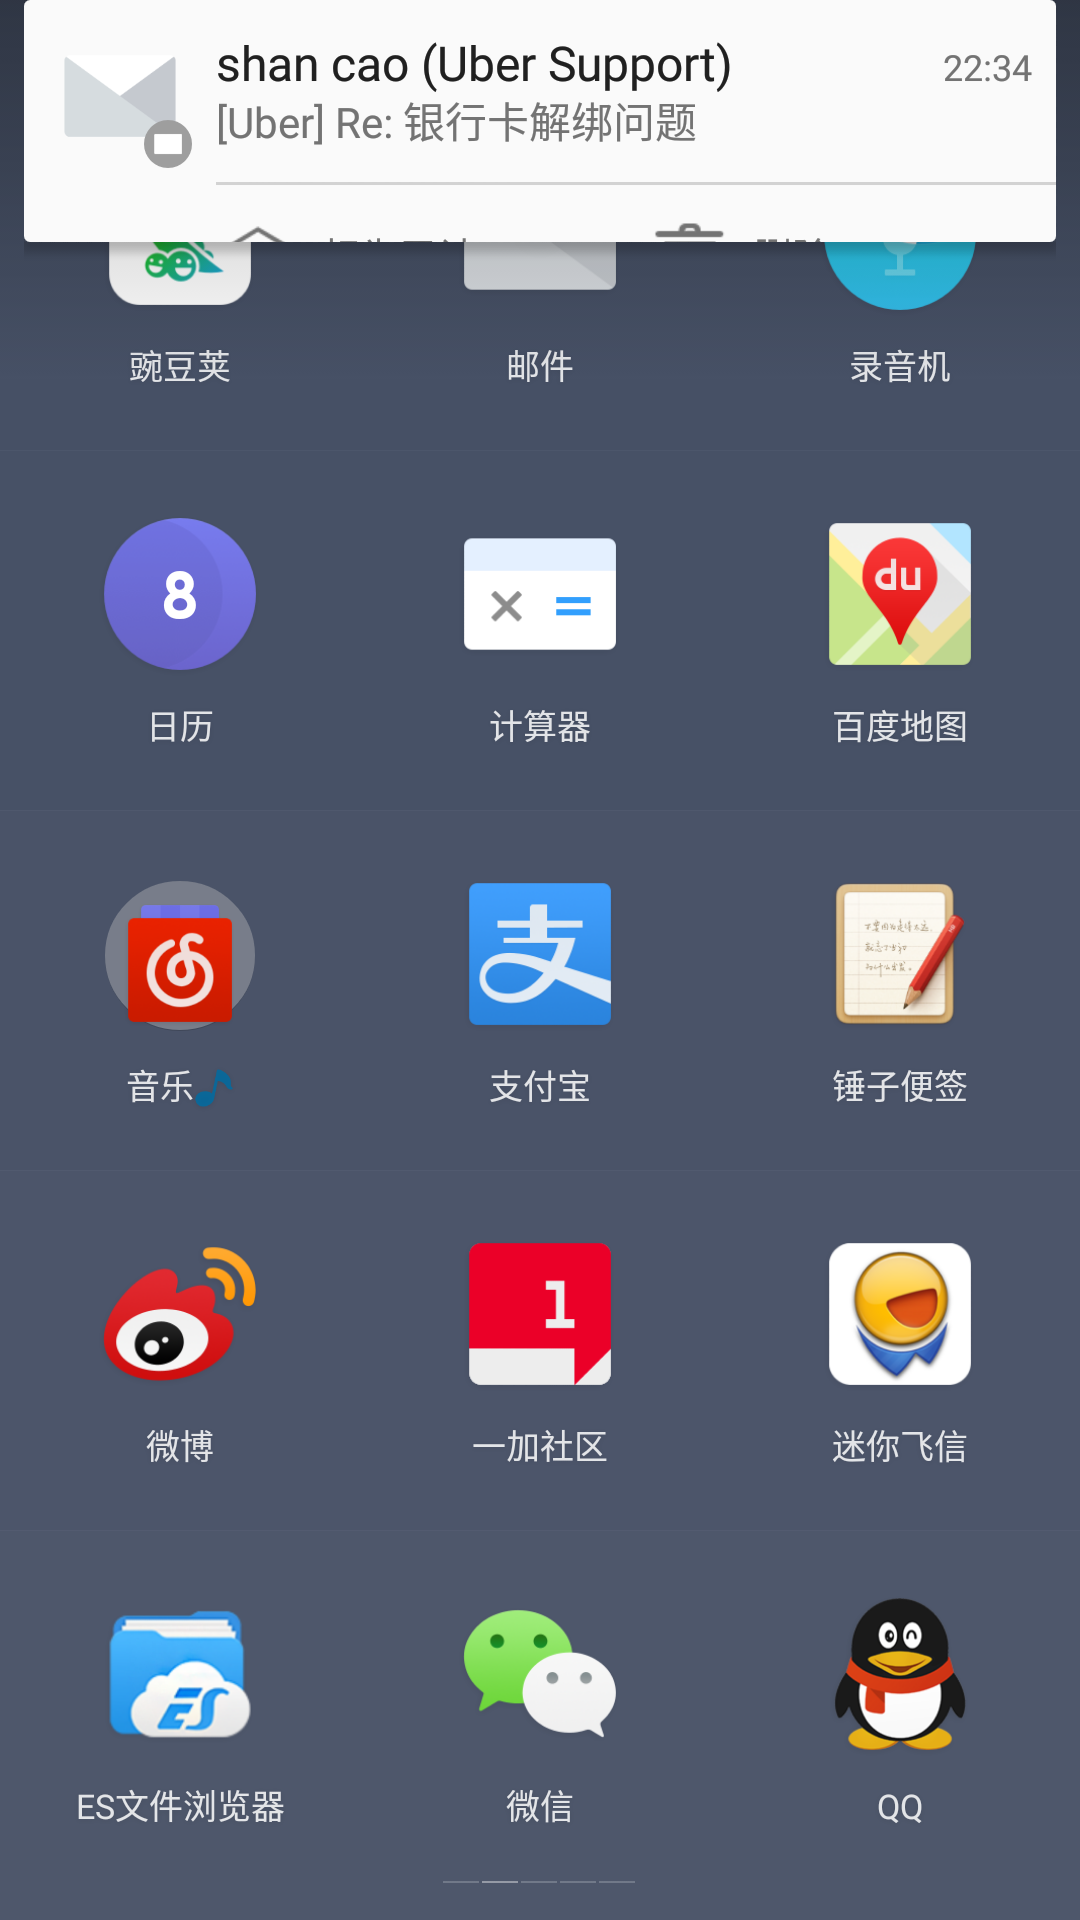 Screenshot_2015-12-08-22-34-55.png